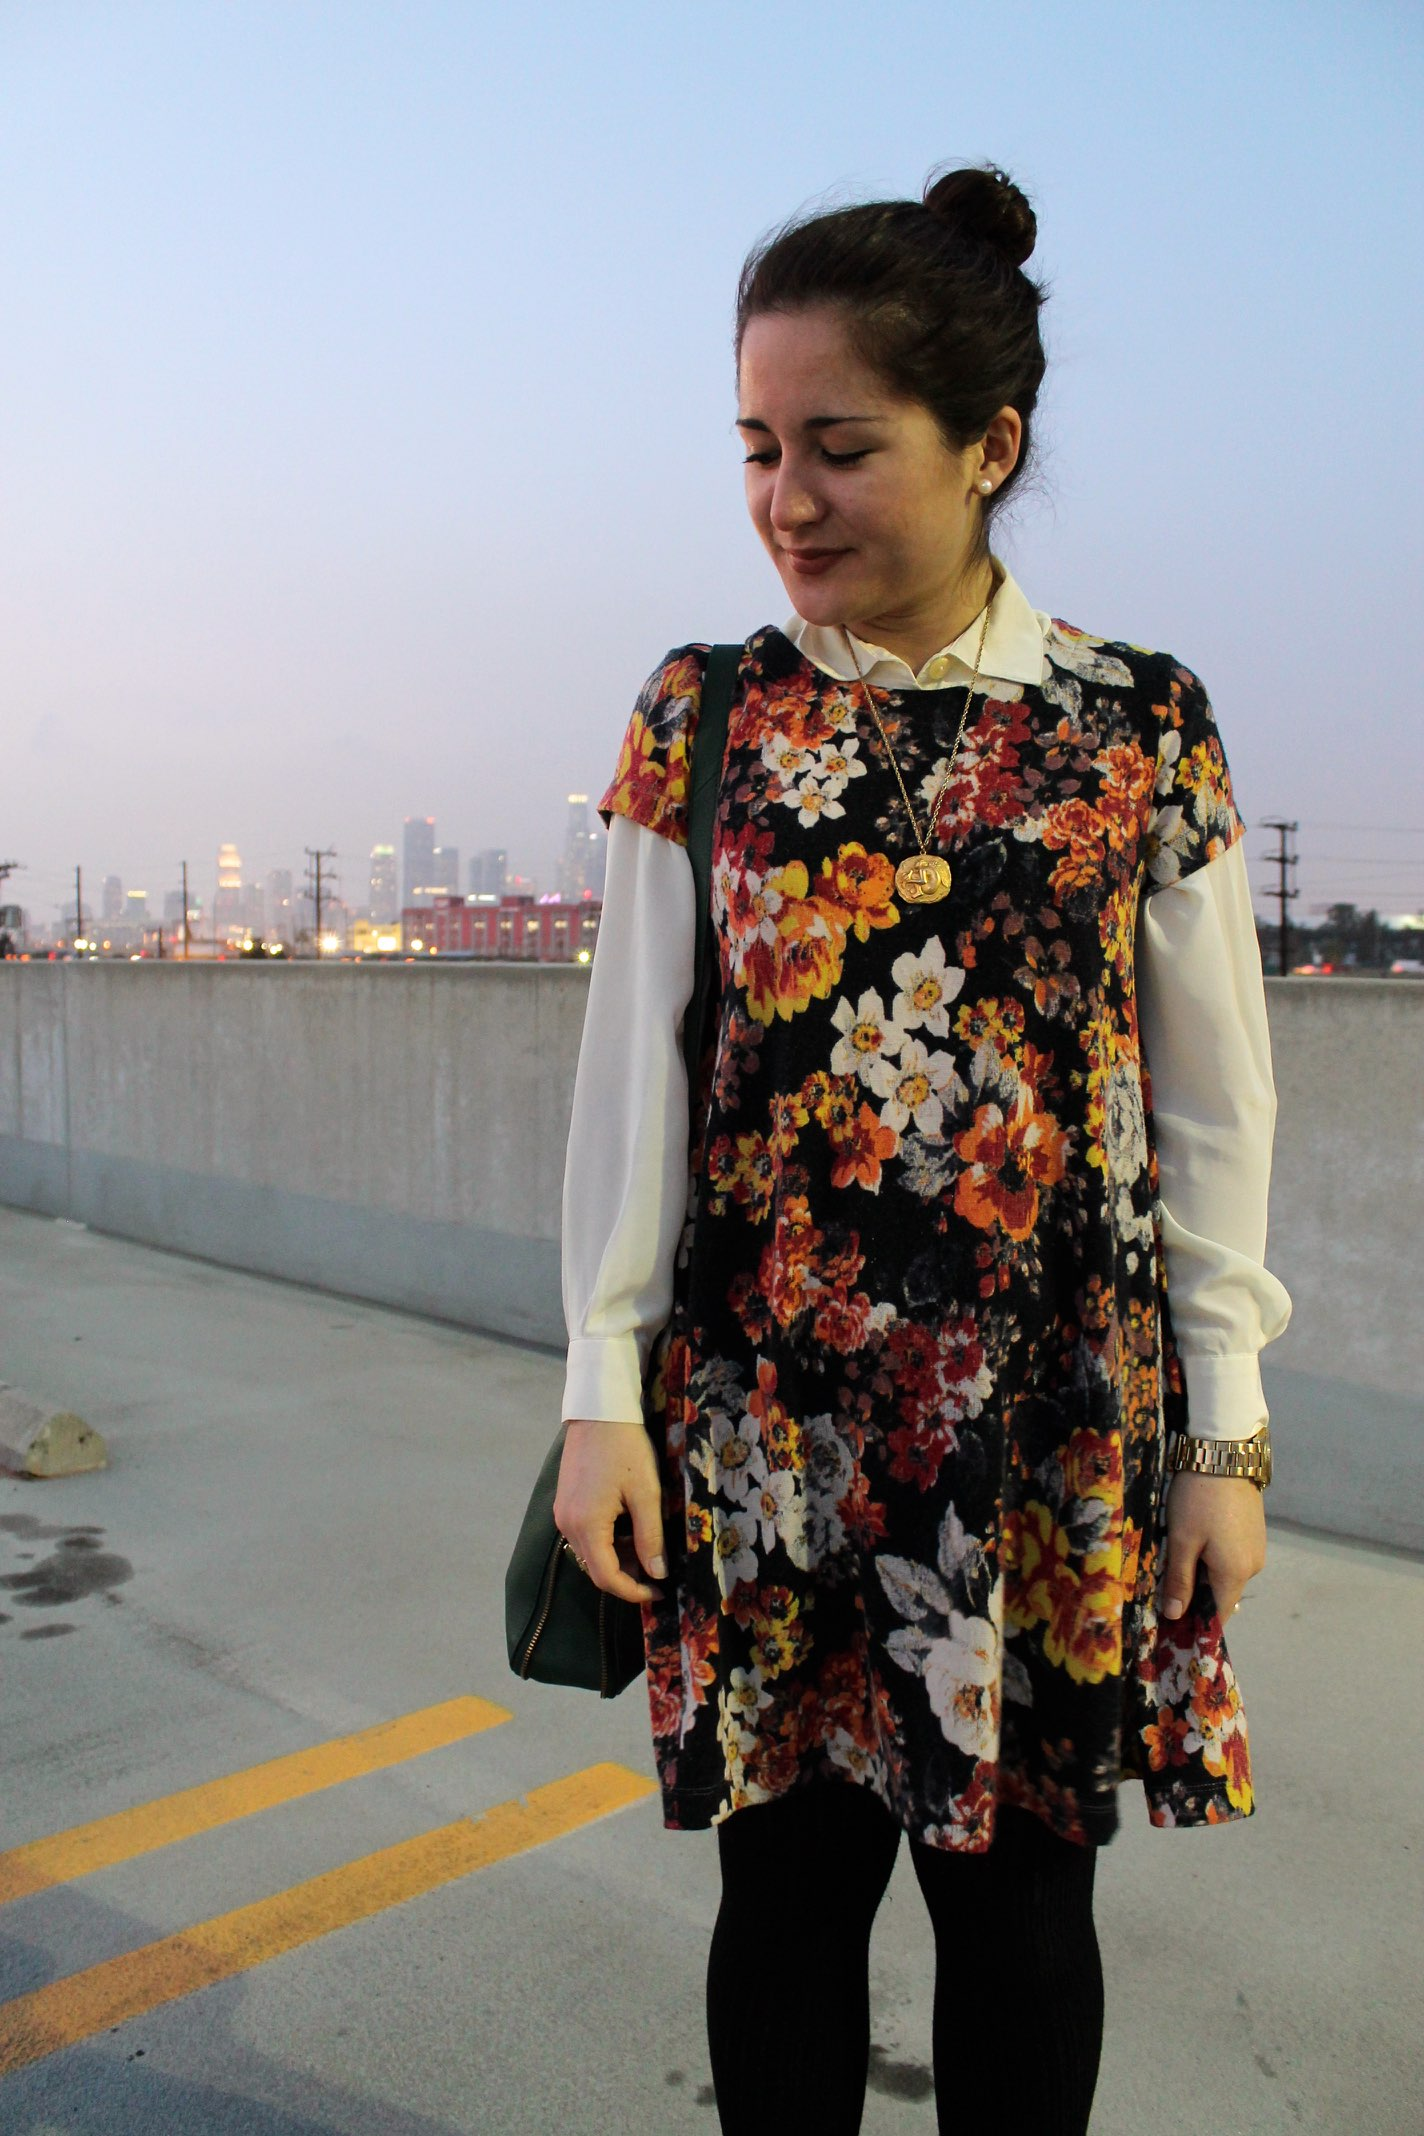 how to style a dress for winter: layered button-up under shift dress #style #ootd #outfit